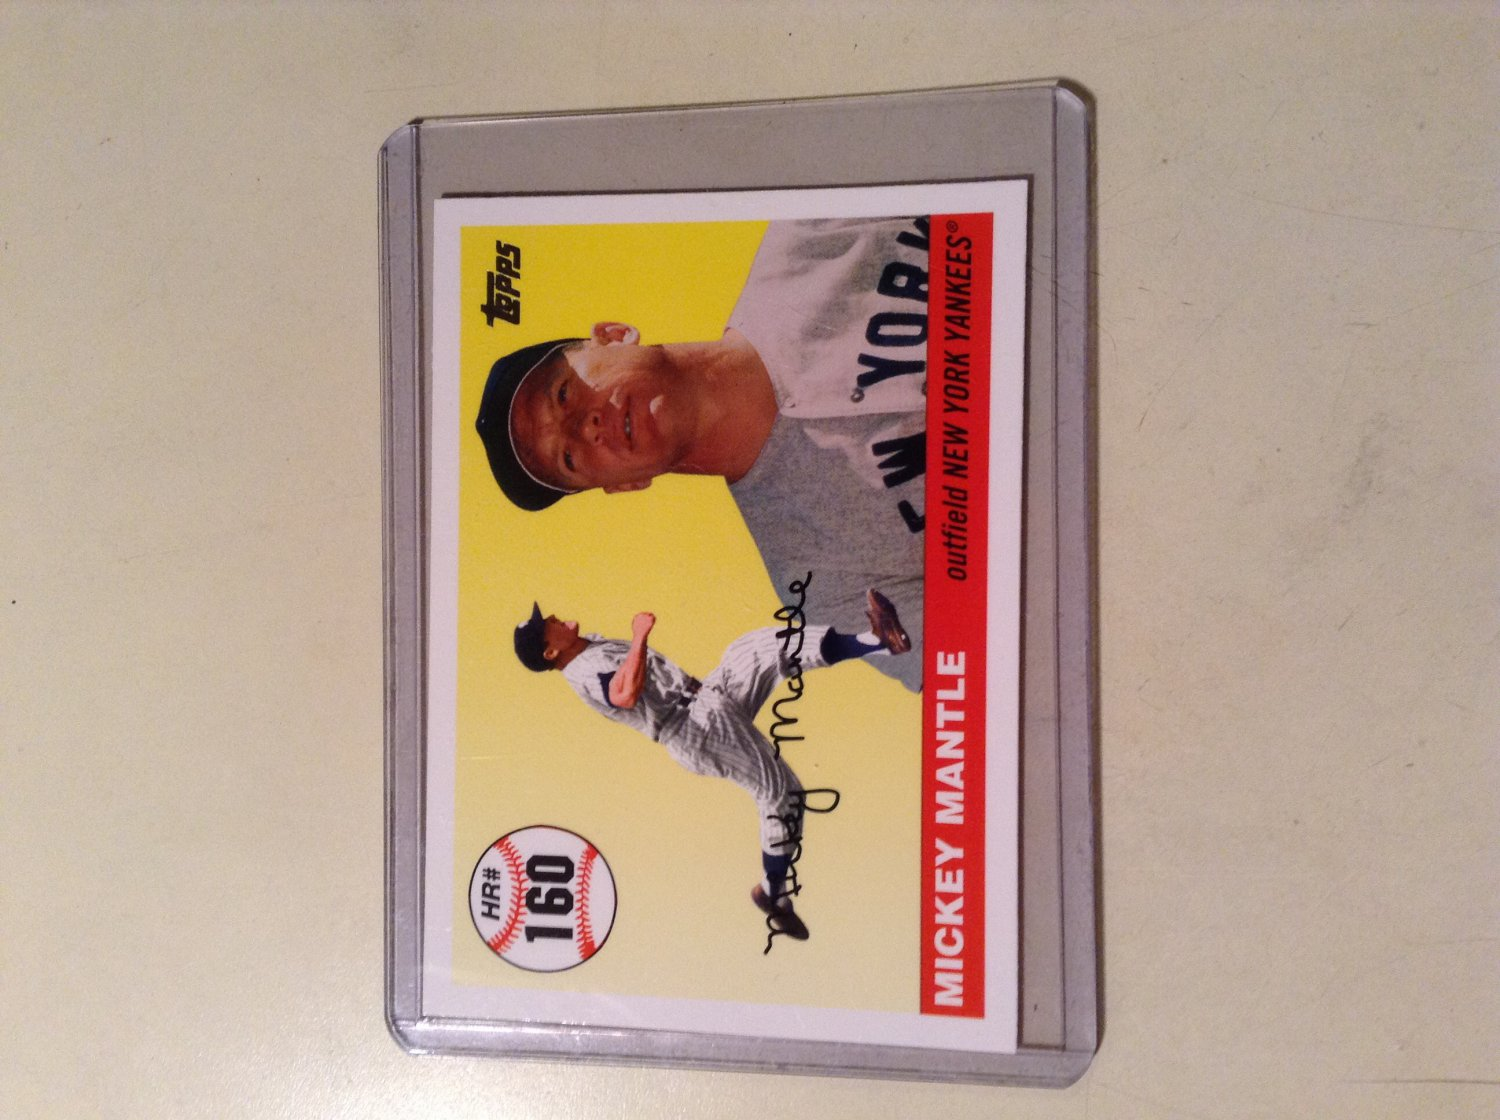 2006 Topps - Mickey Mantle (MHR160)